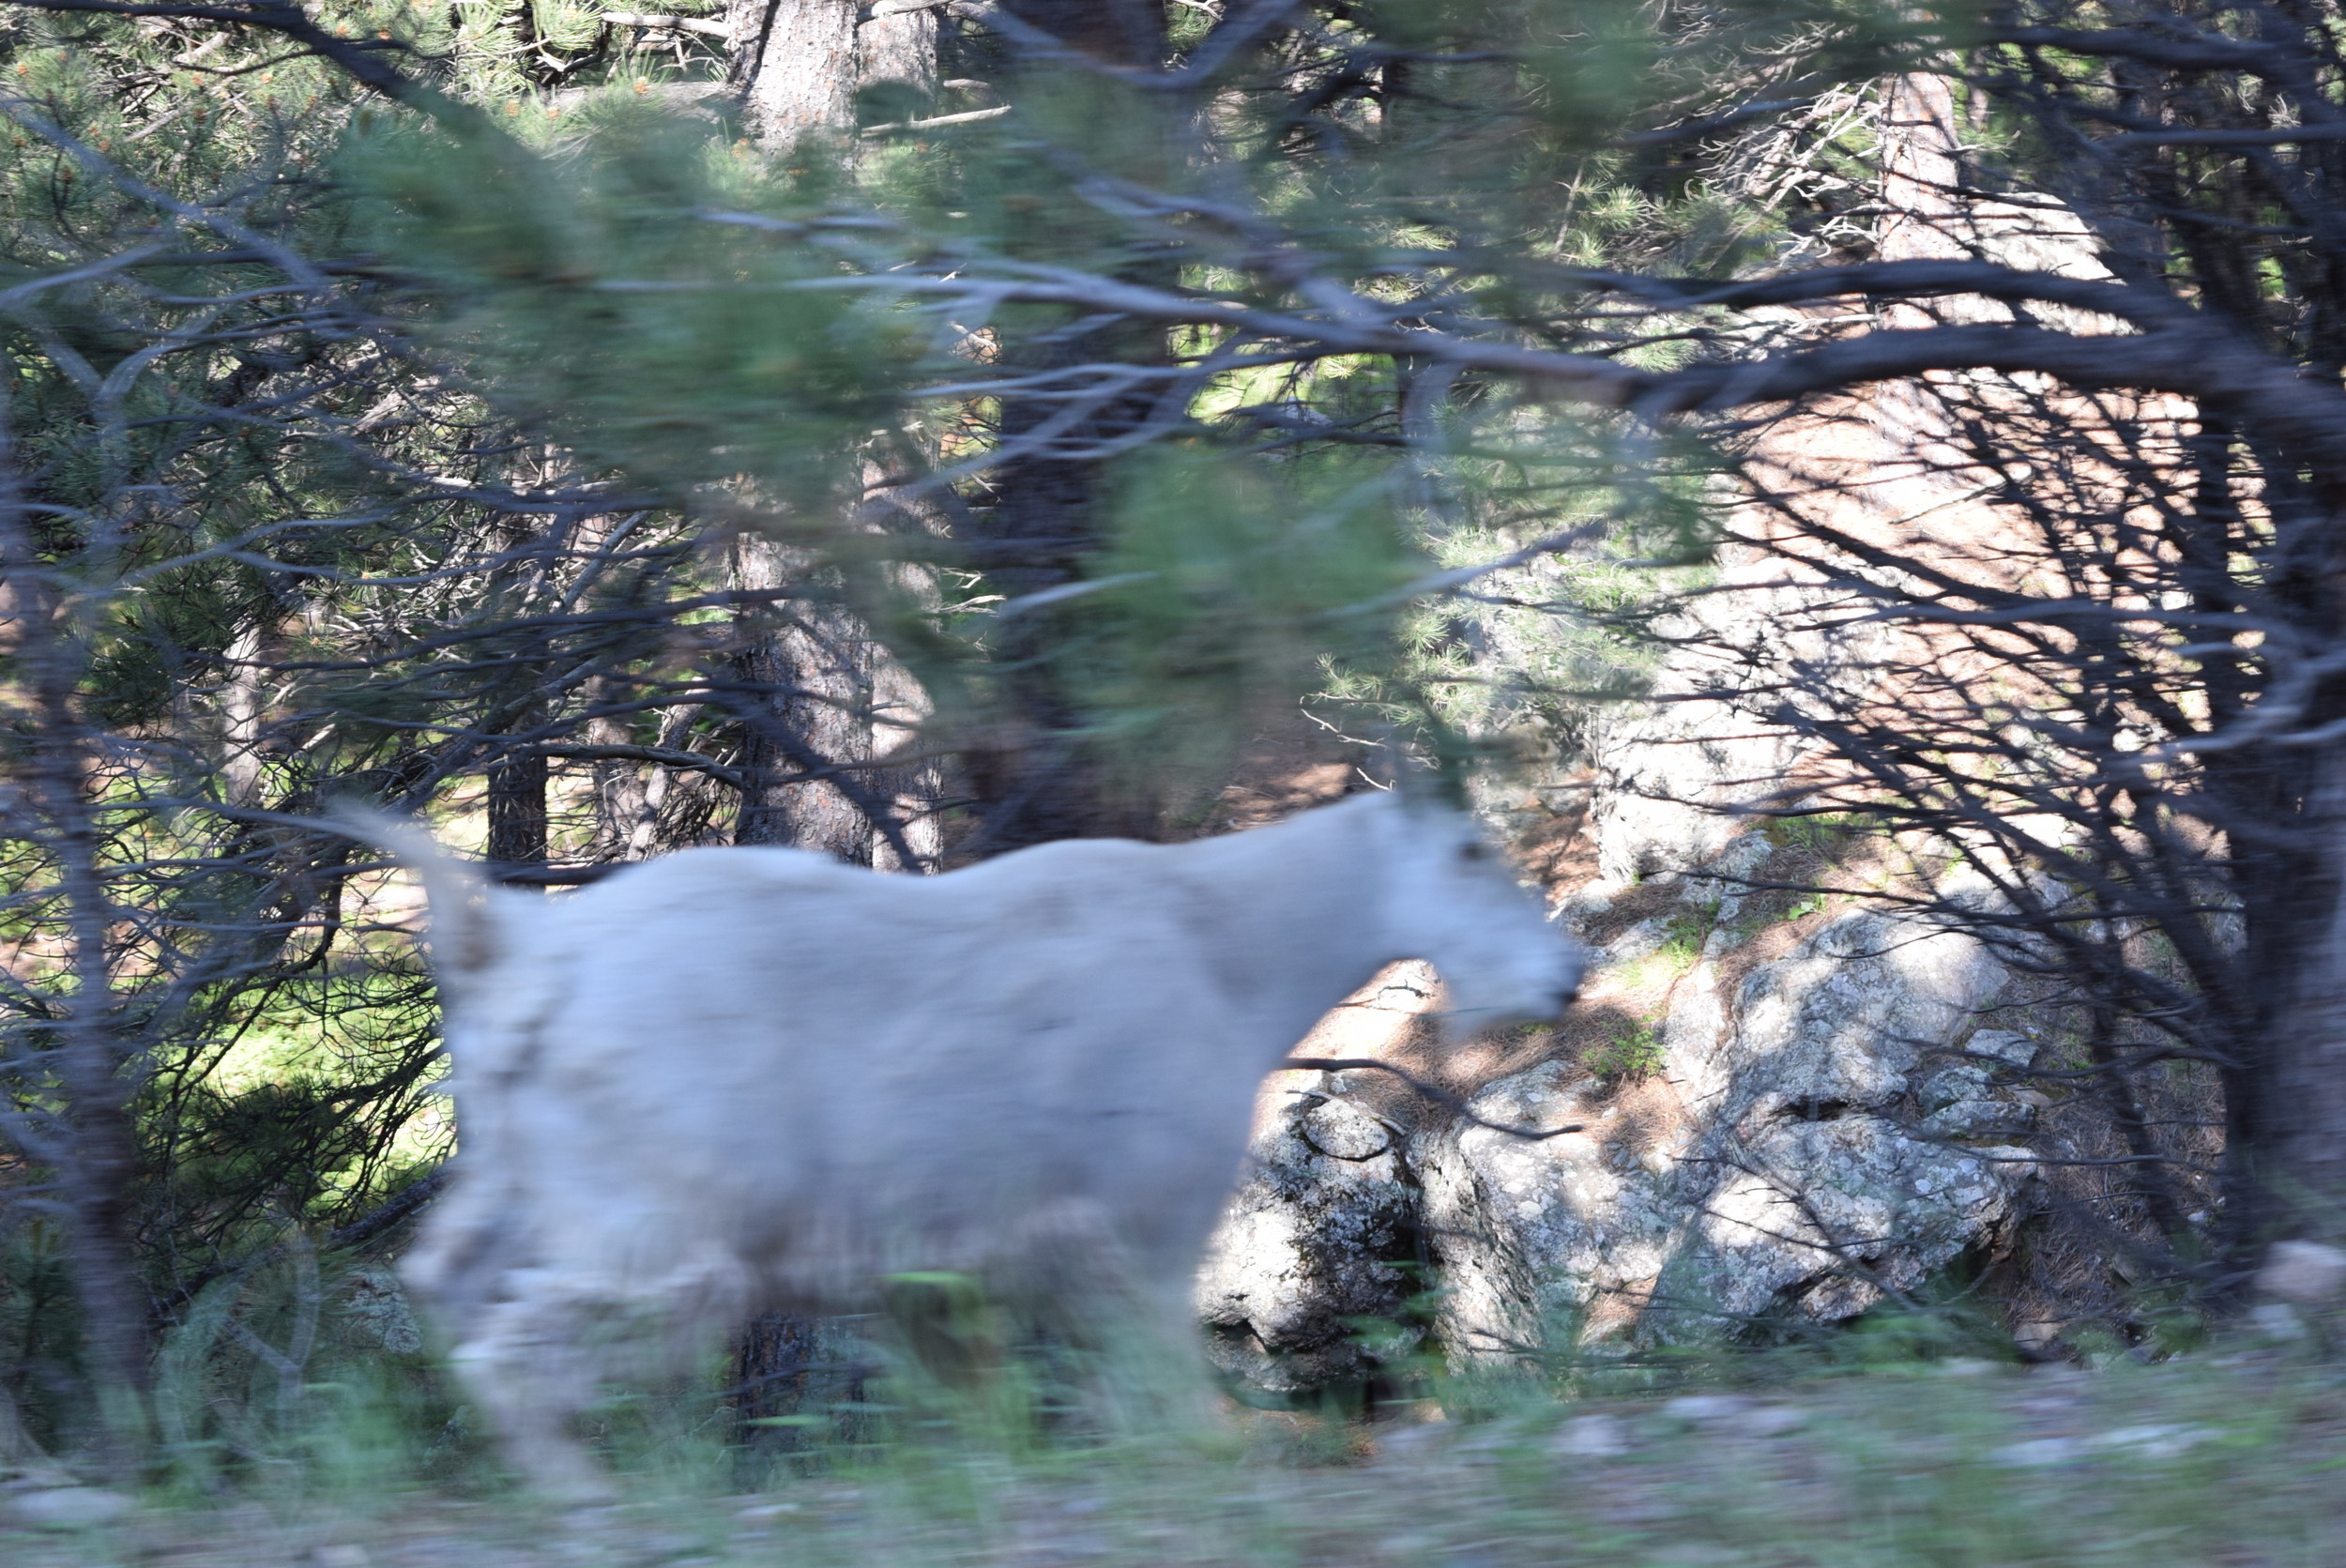 Mama or Papa mountain goat. I got this shot out the window on the fly. A little blurry.